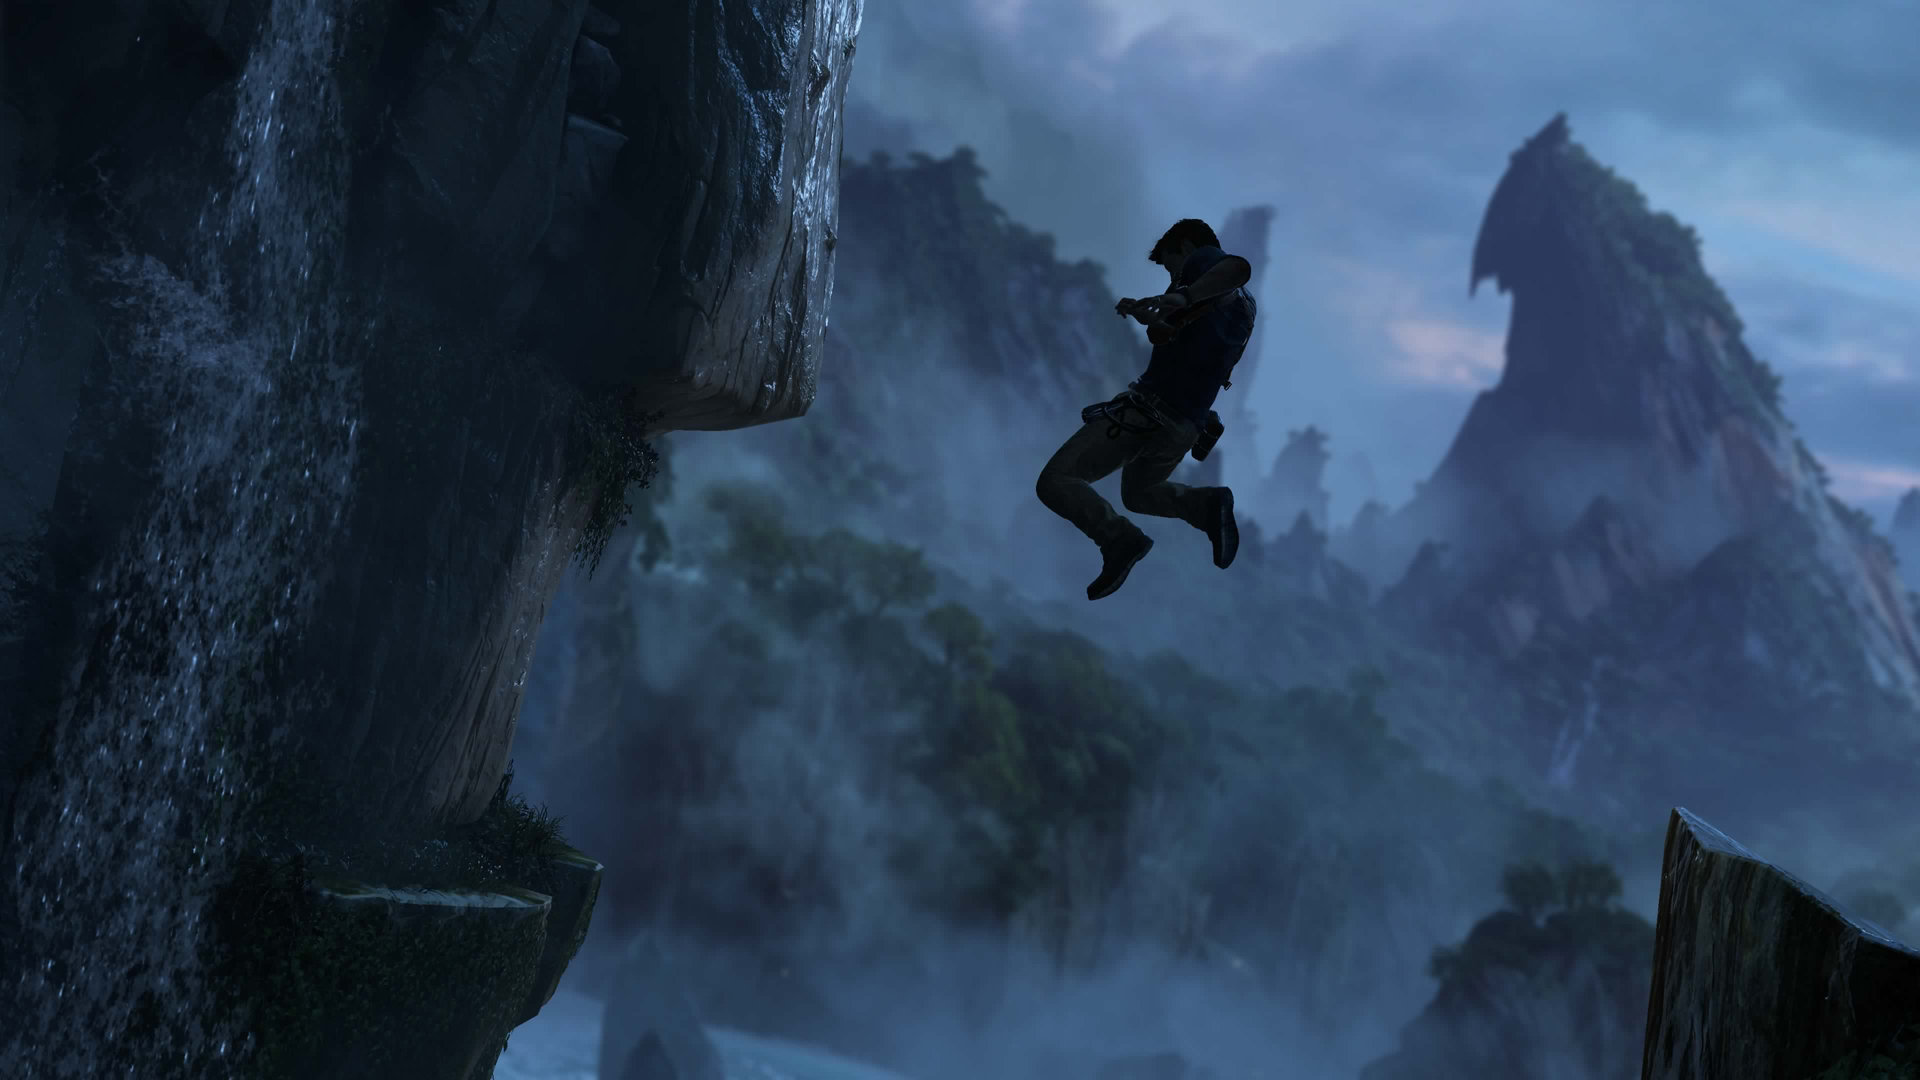 uncharted-4-screen-24-ps4-en-eu-29jun15.jpg